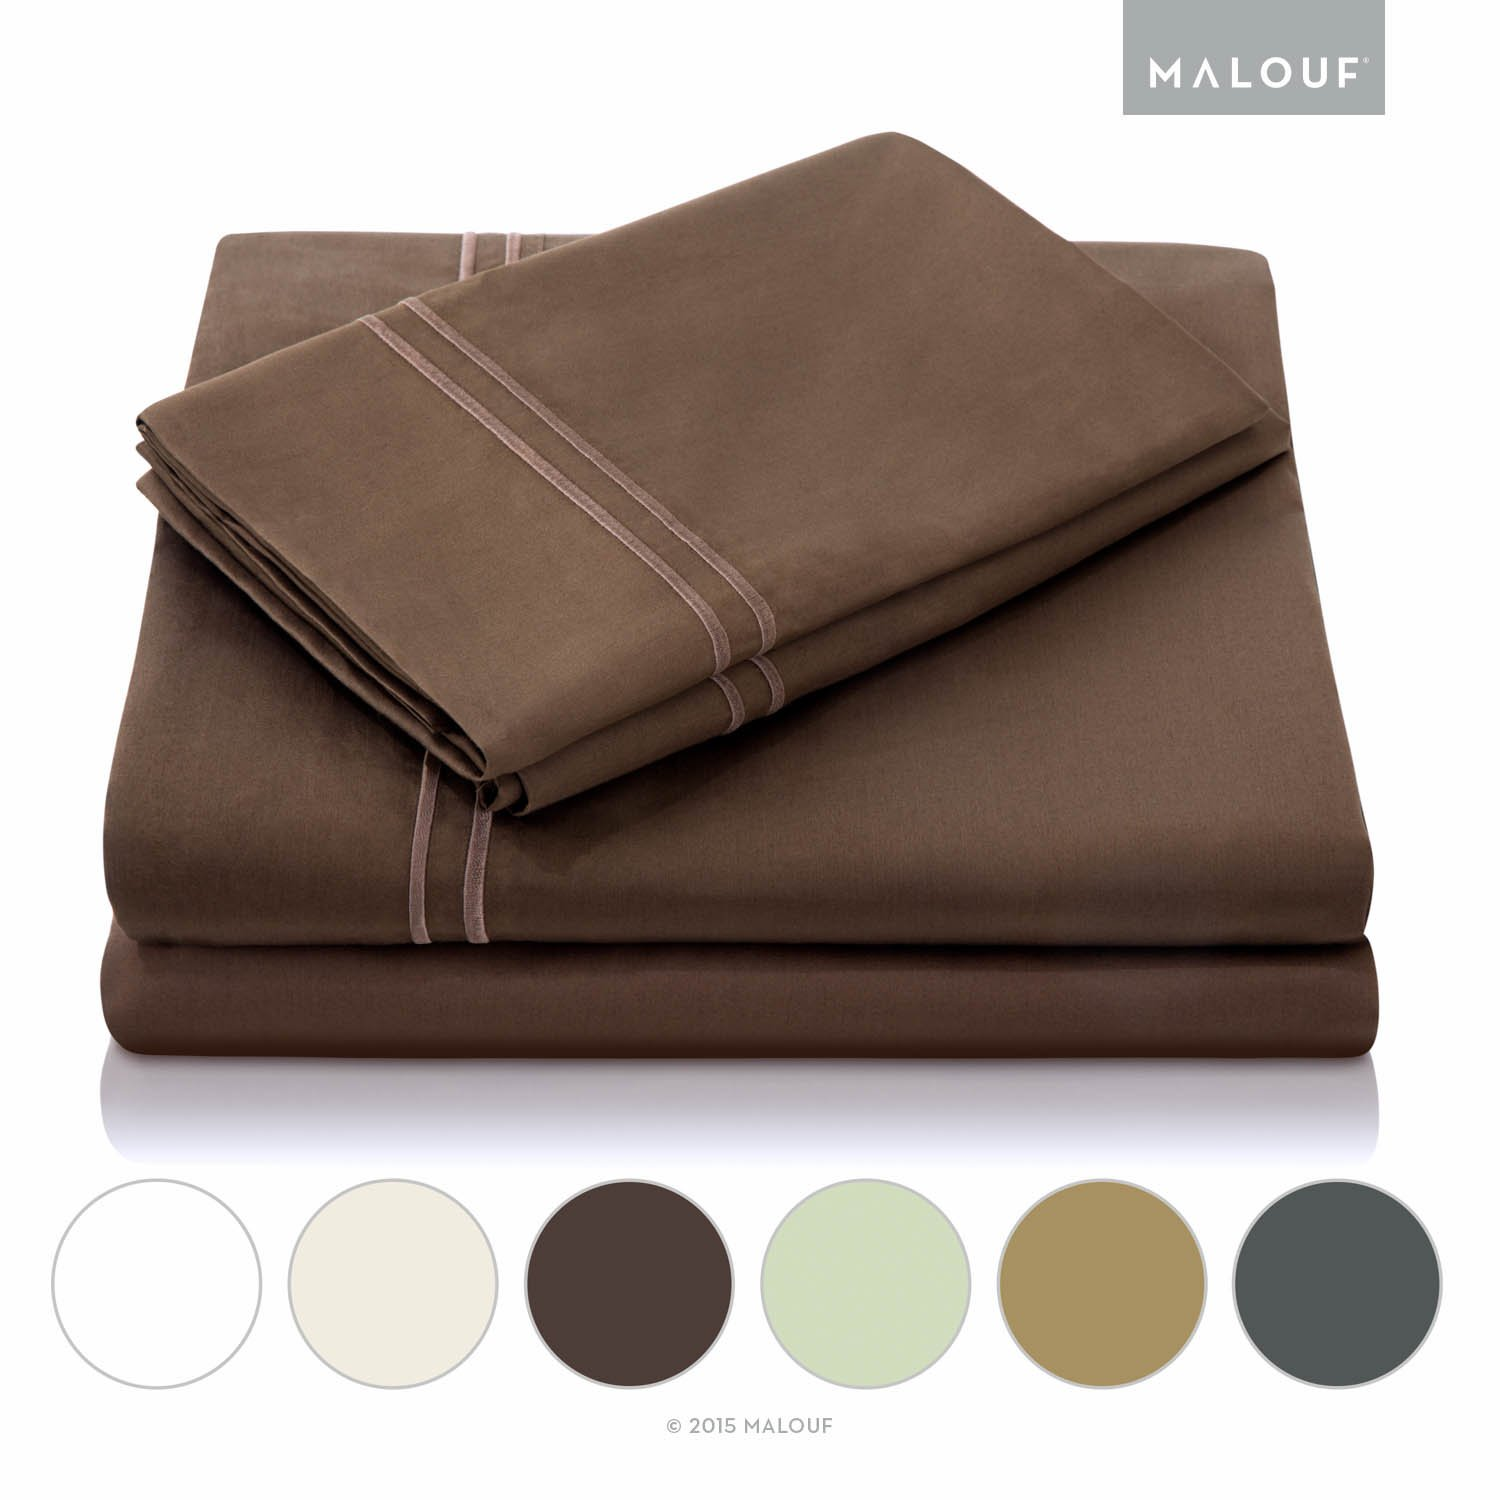 MALOUF 600 Thread Count Genuine Egyptian Cotton Single Ply Bed Sheet Set - King - Chocolate